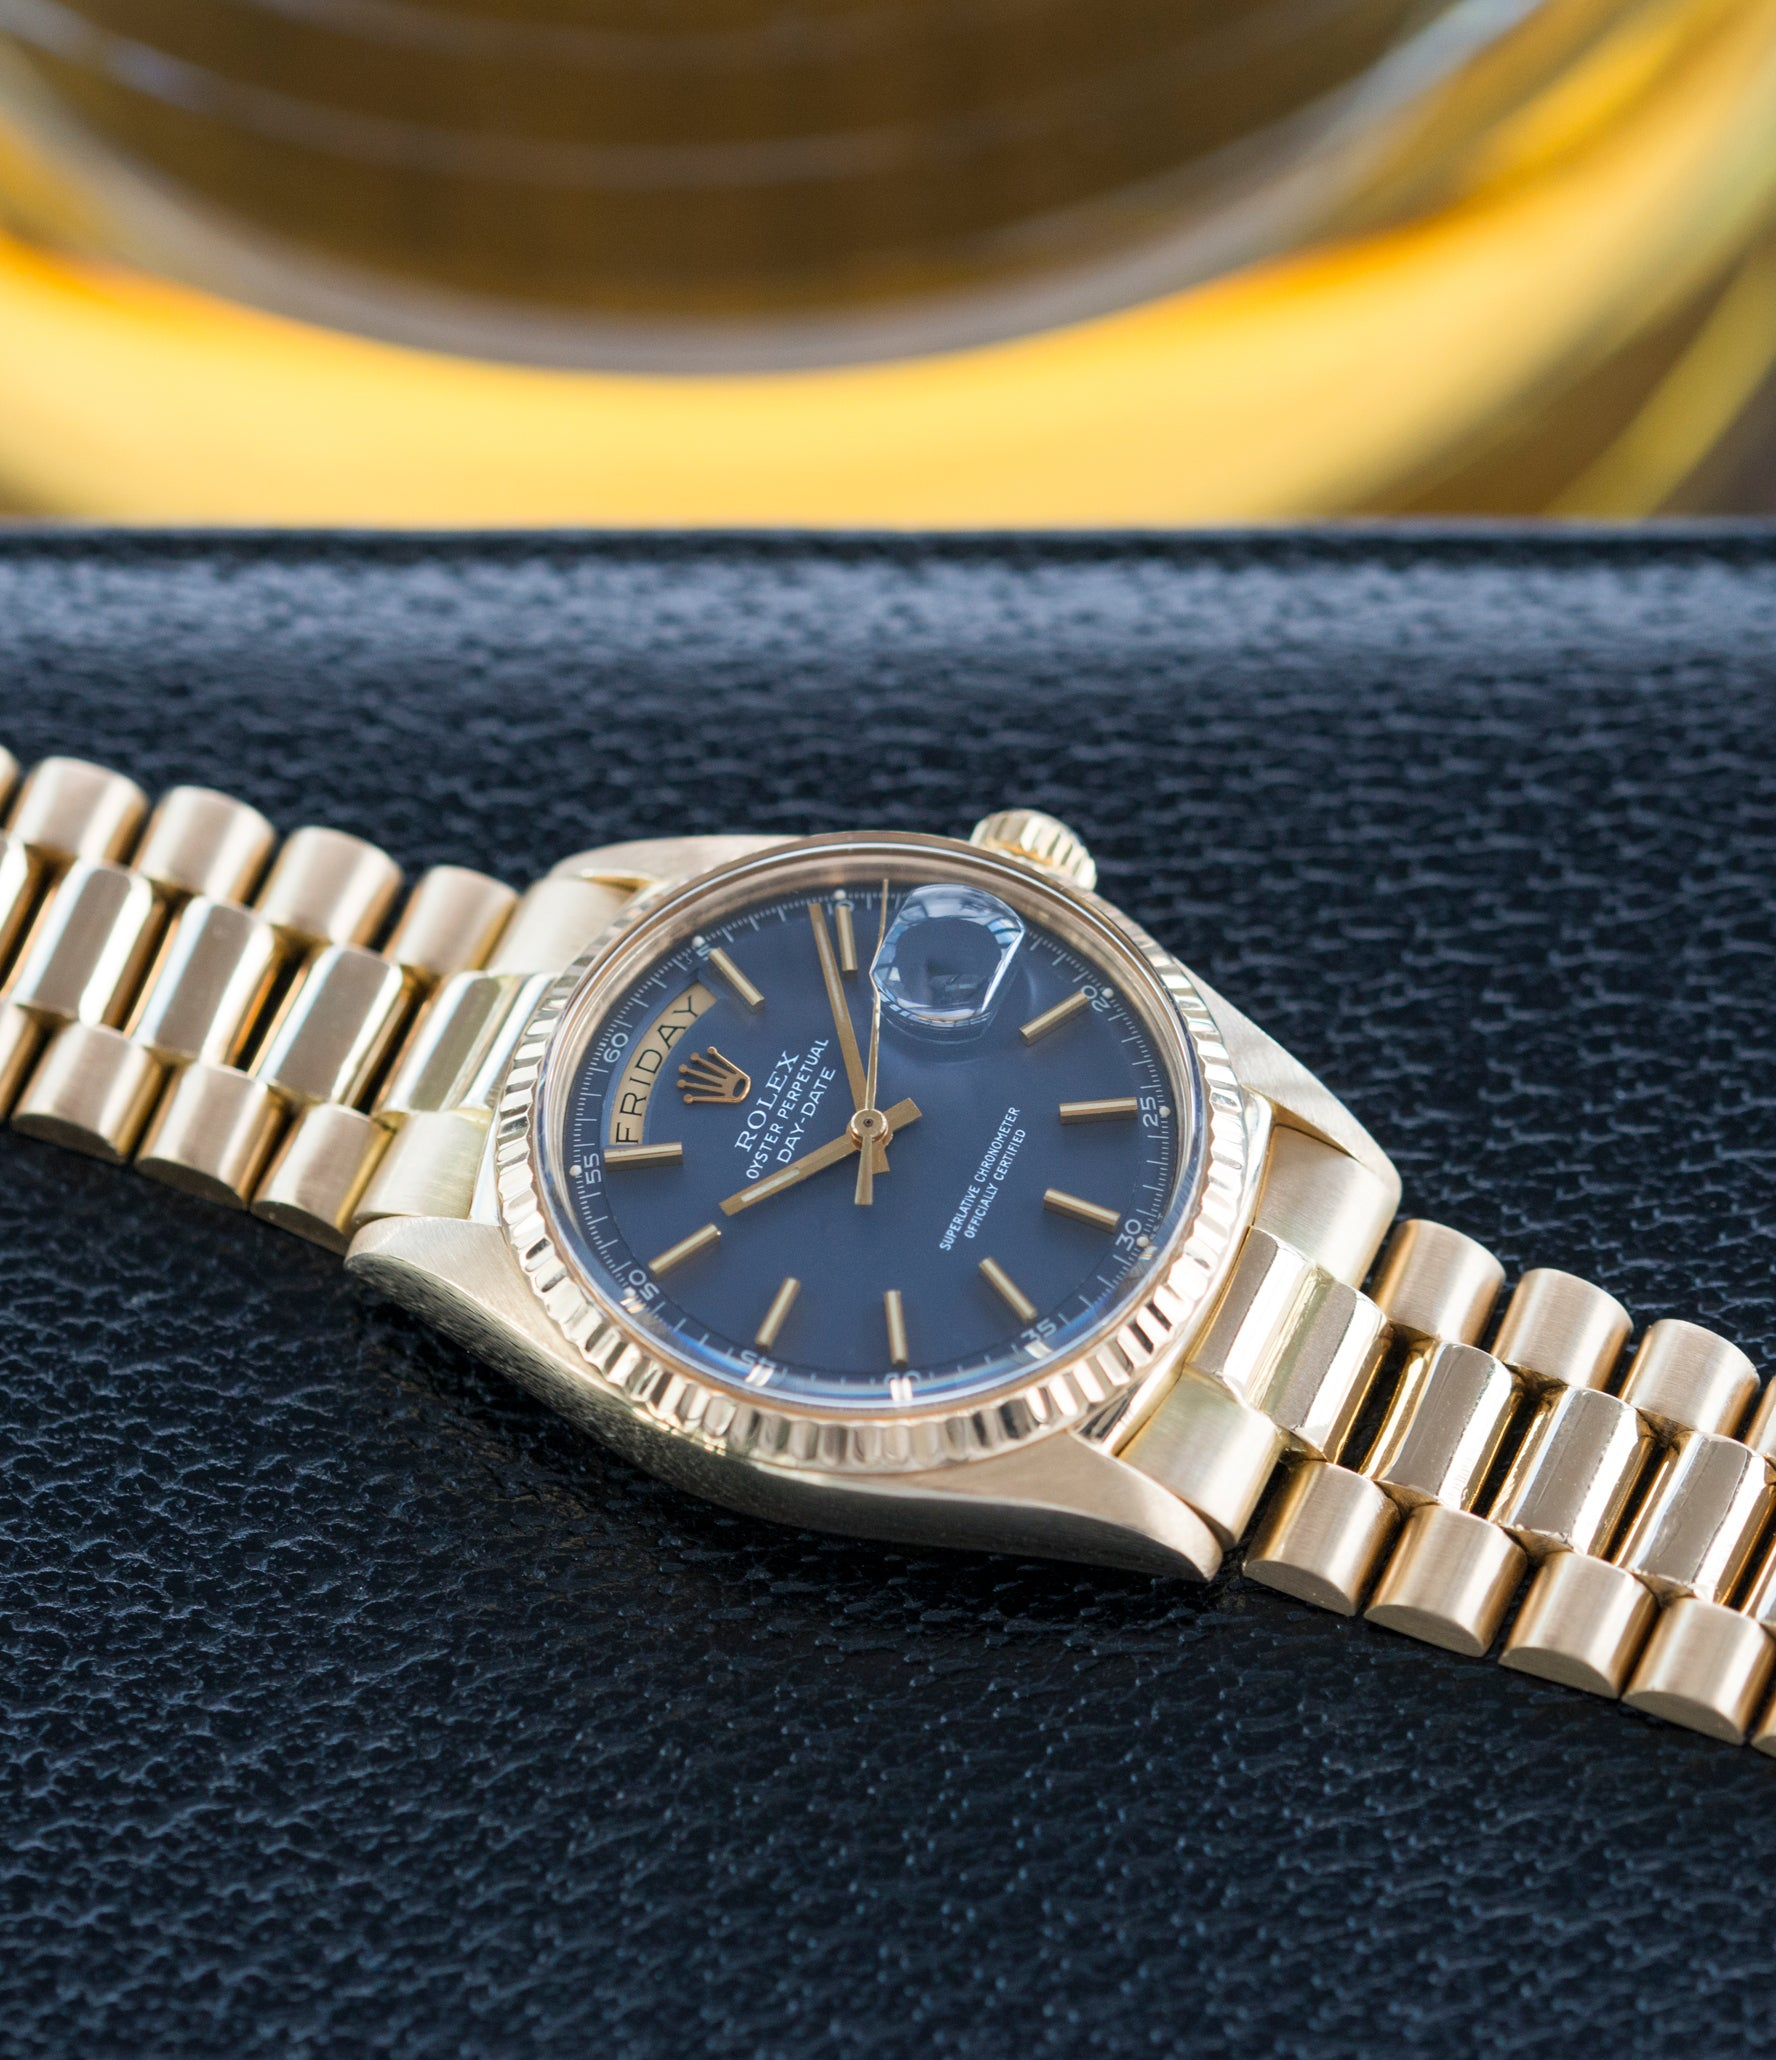 selling vintage Rolex Day-Date 1803 Oyster Perpetual Cal. 1556 gold watch blue dial for sale online at A Collected Man London UK specialist of rare watches